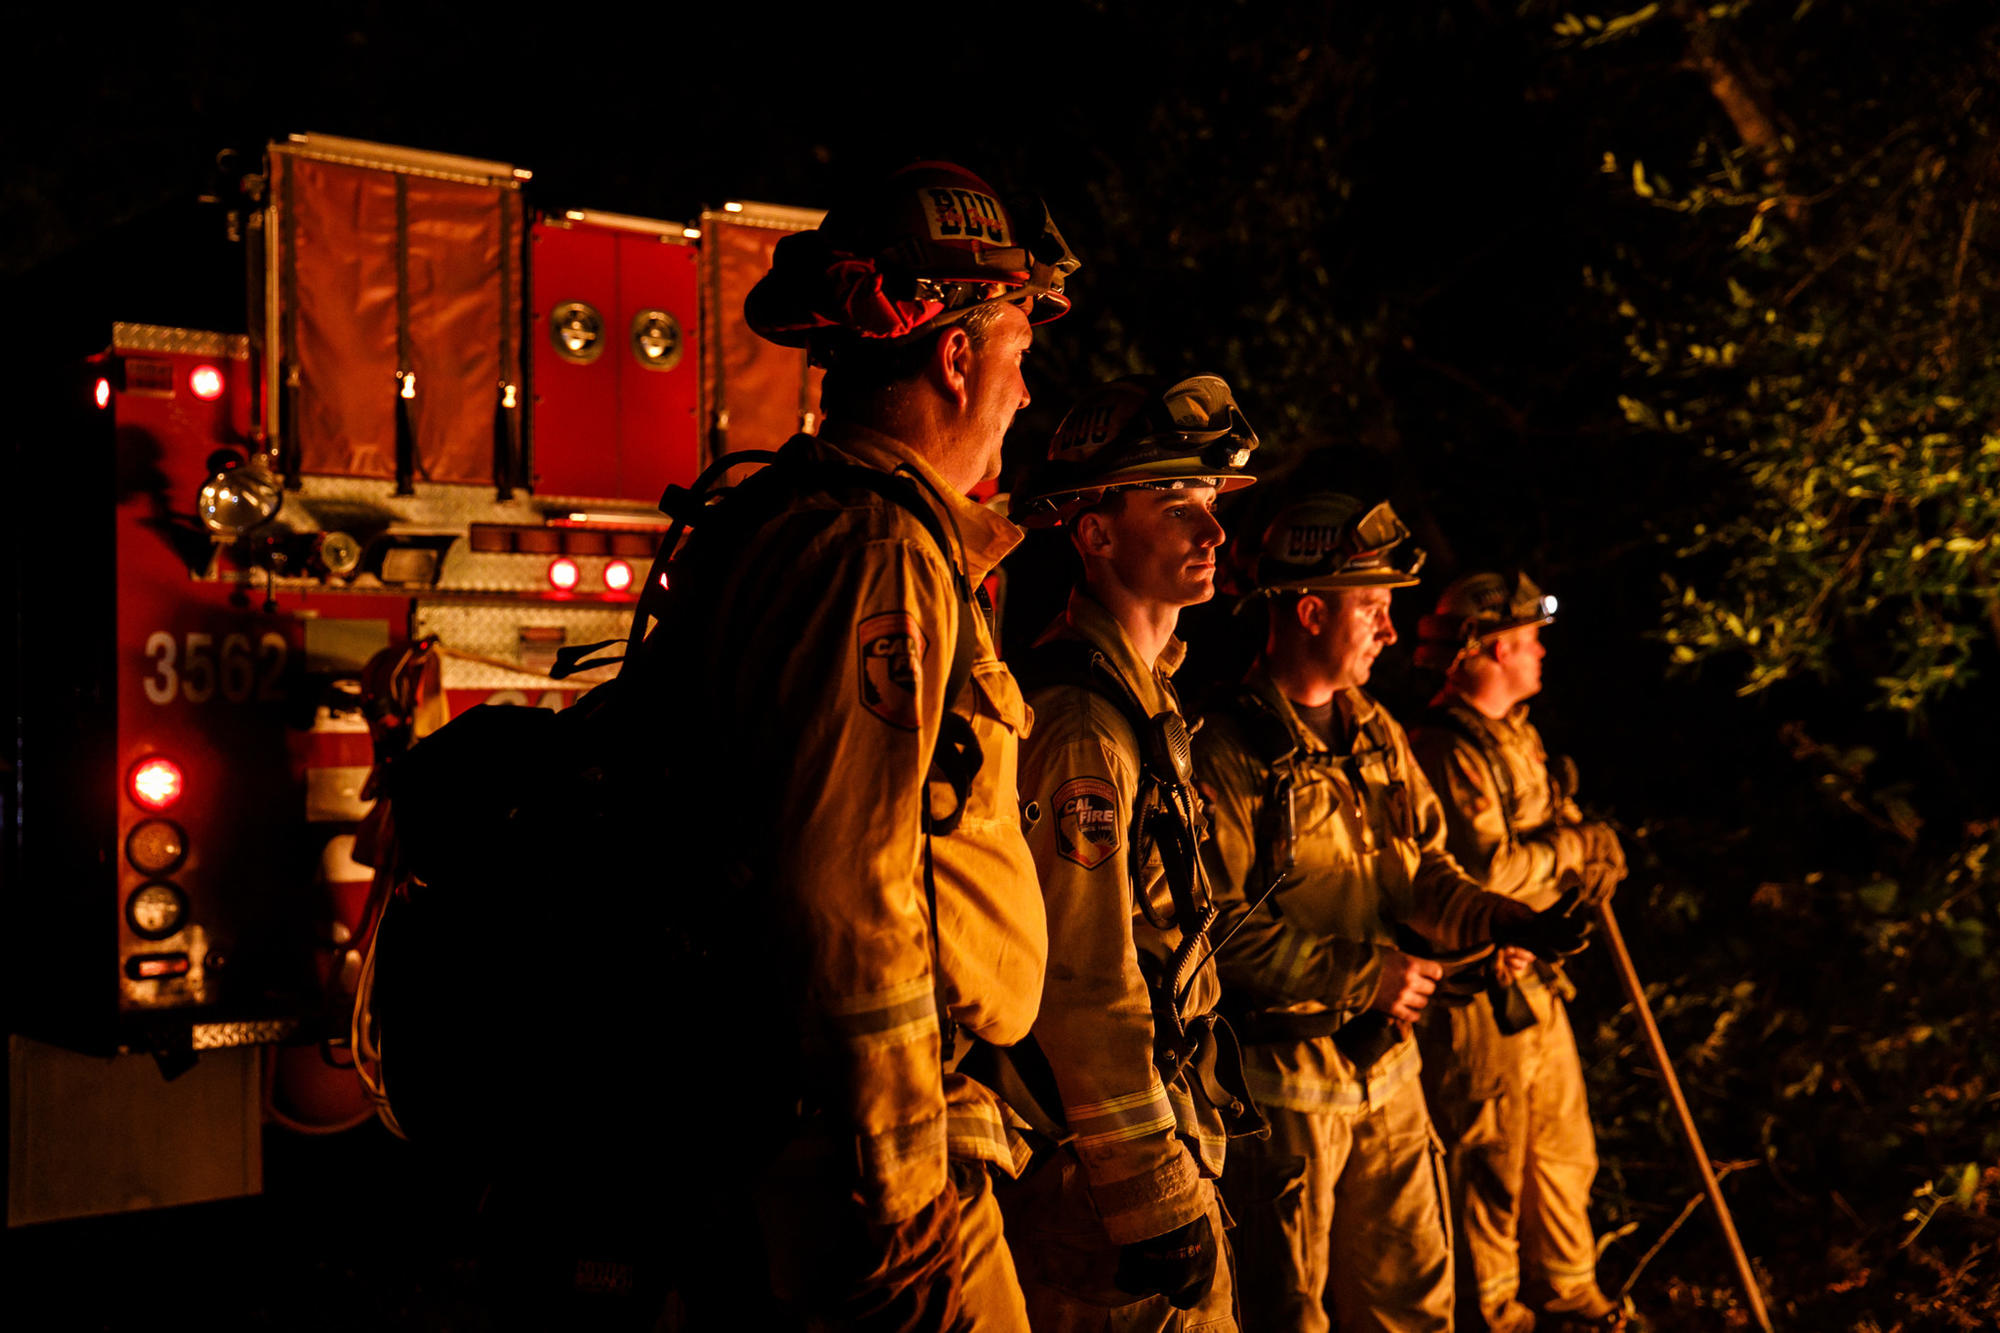 From left, firefighters Gary Mattingly, Tim Zanotelli, Brandon Tolp and Devon Elenburg, all based in San Bernardino, stand ready to swing into action along Highway 29 north of Calistoga on Oct. 12.